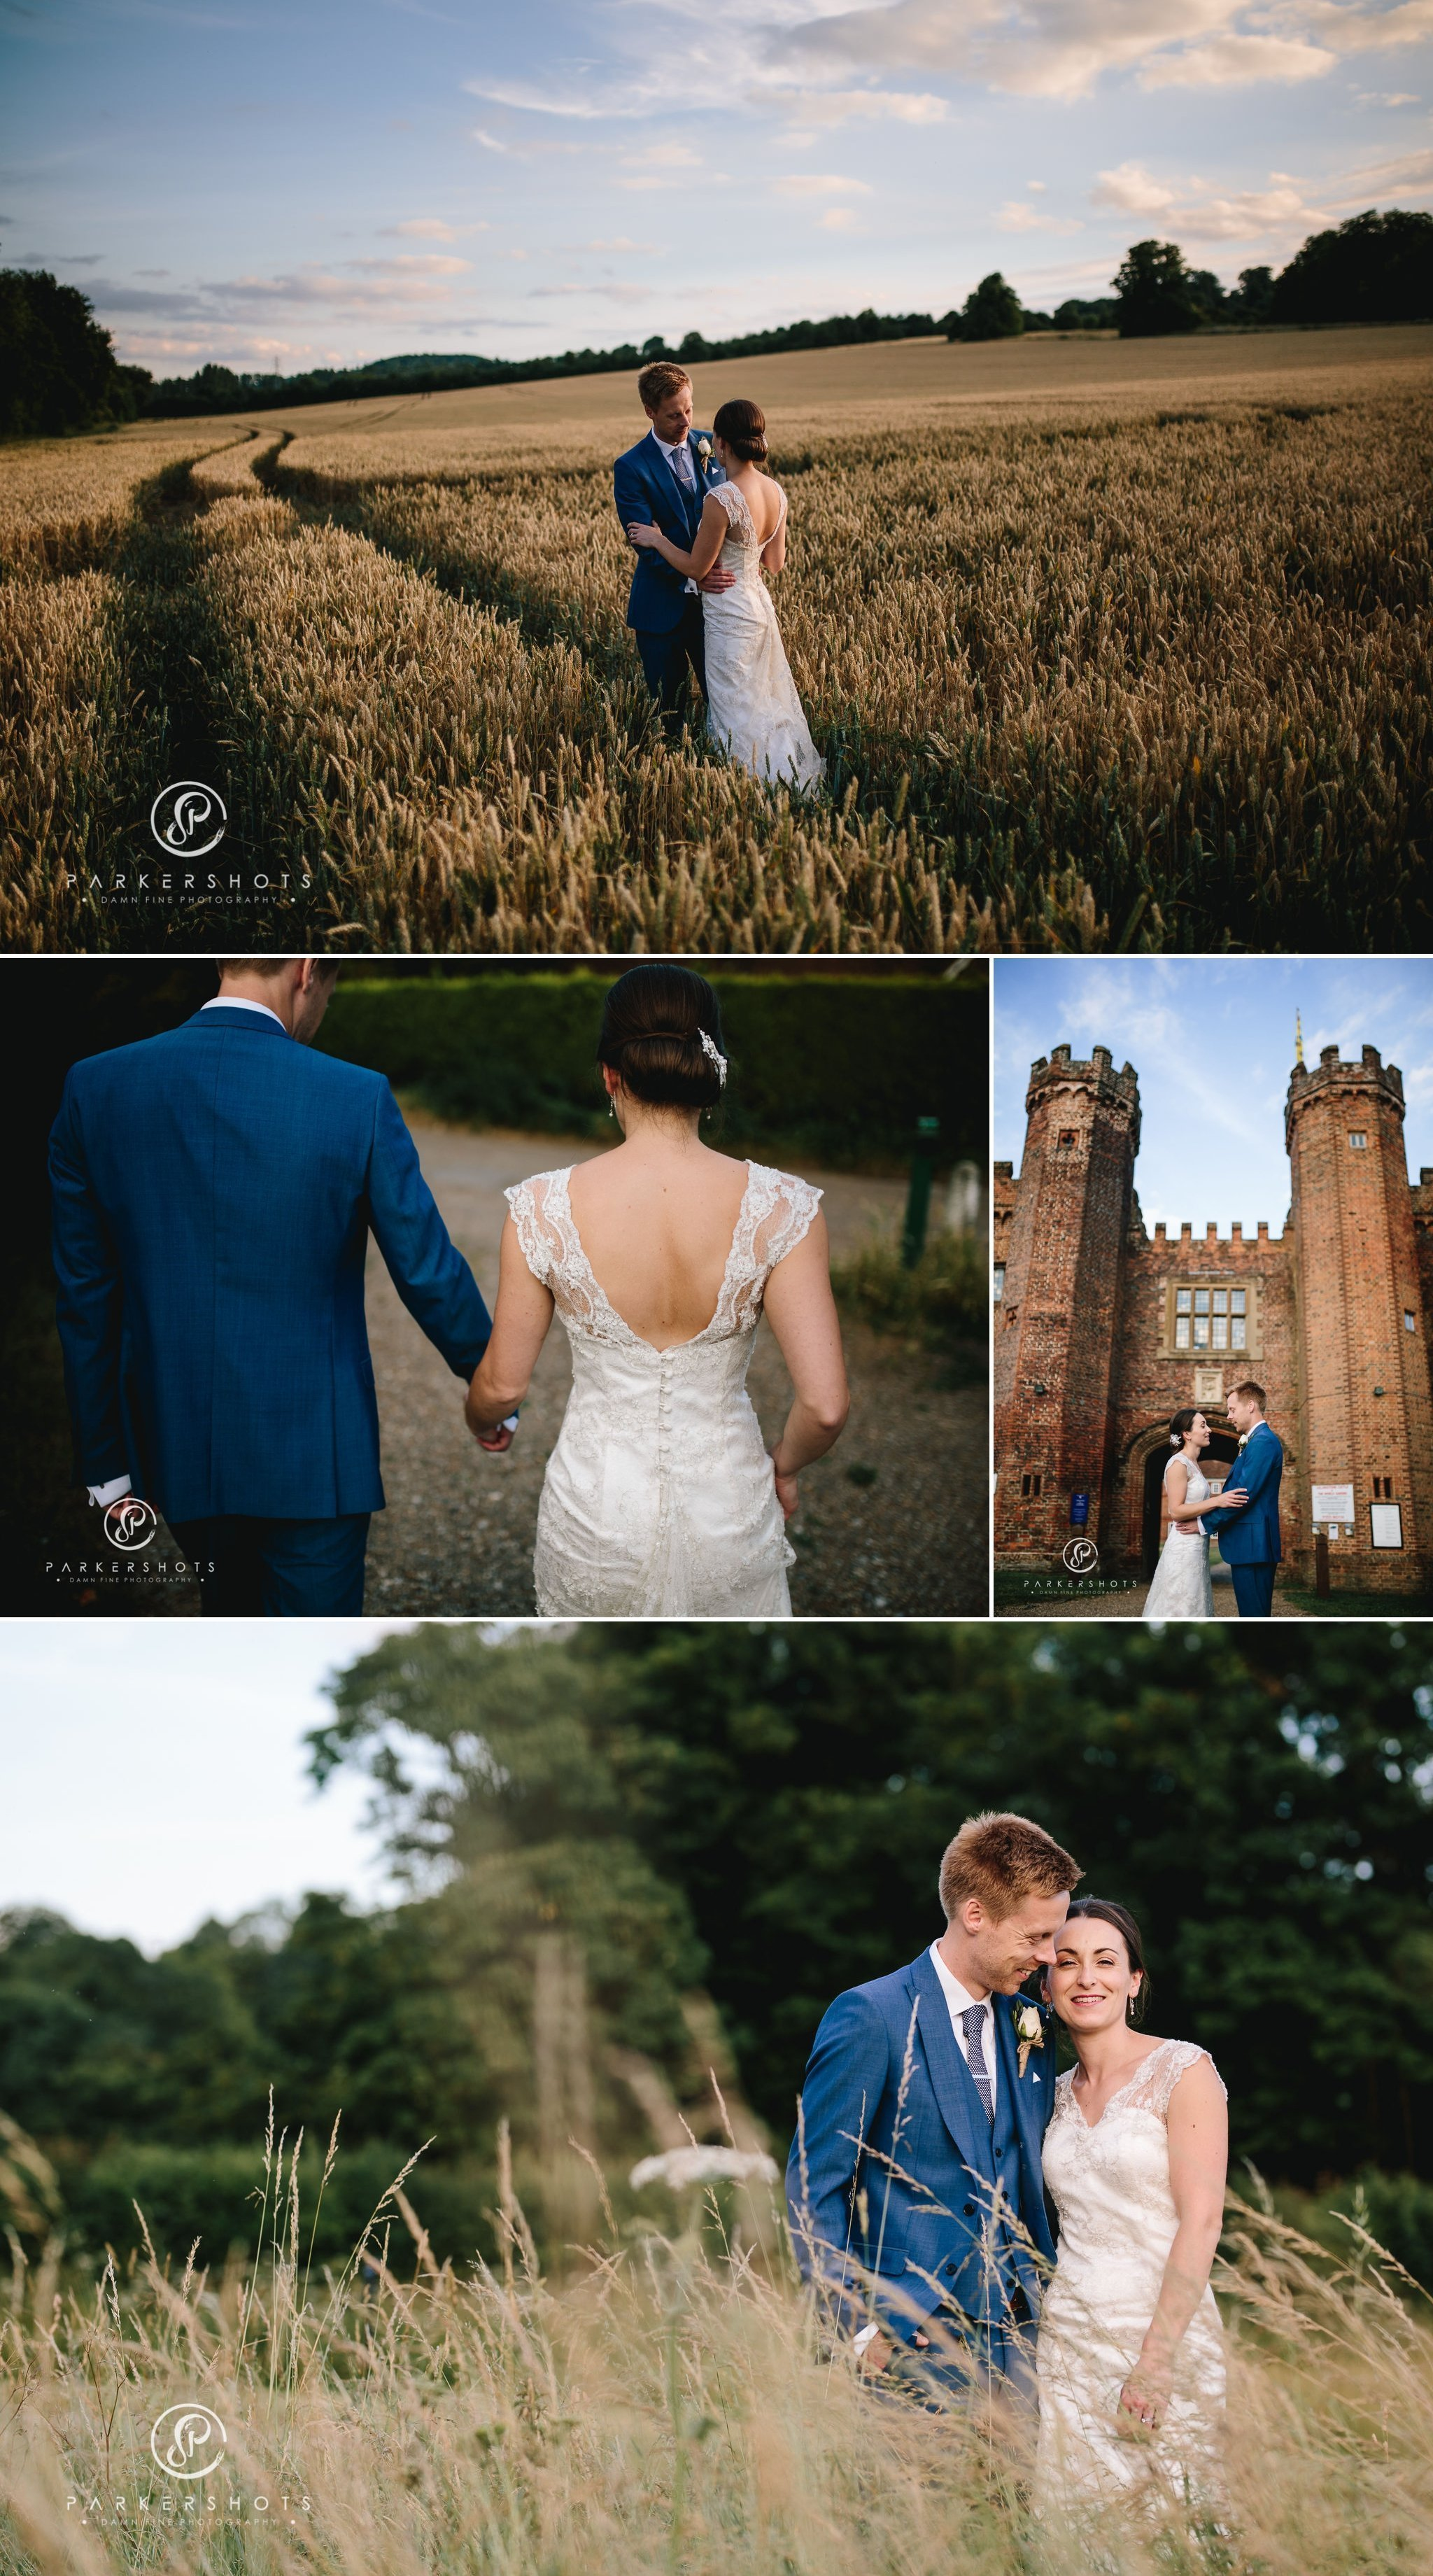 Incredible wedding photography at Lullingstone Castle